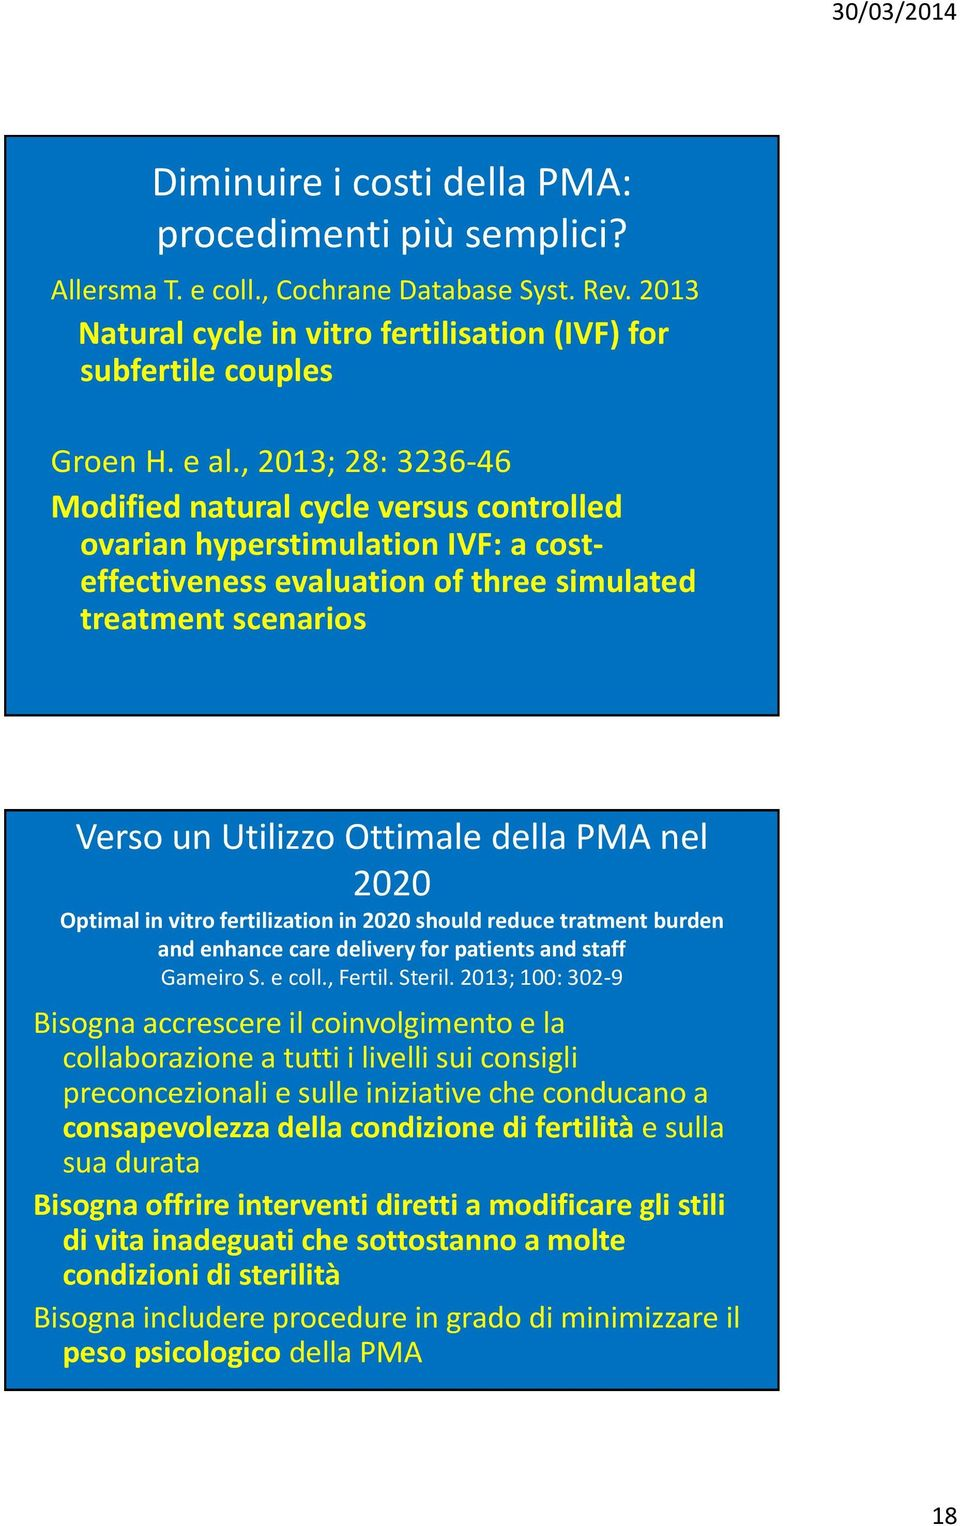 nel 2020 Optimal in vitro fertilization in 2020 should reduce tratment burden and enhance care delivery for patients and staff Gameiro S. e coll., Fertil. Steril.